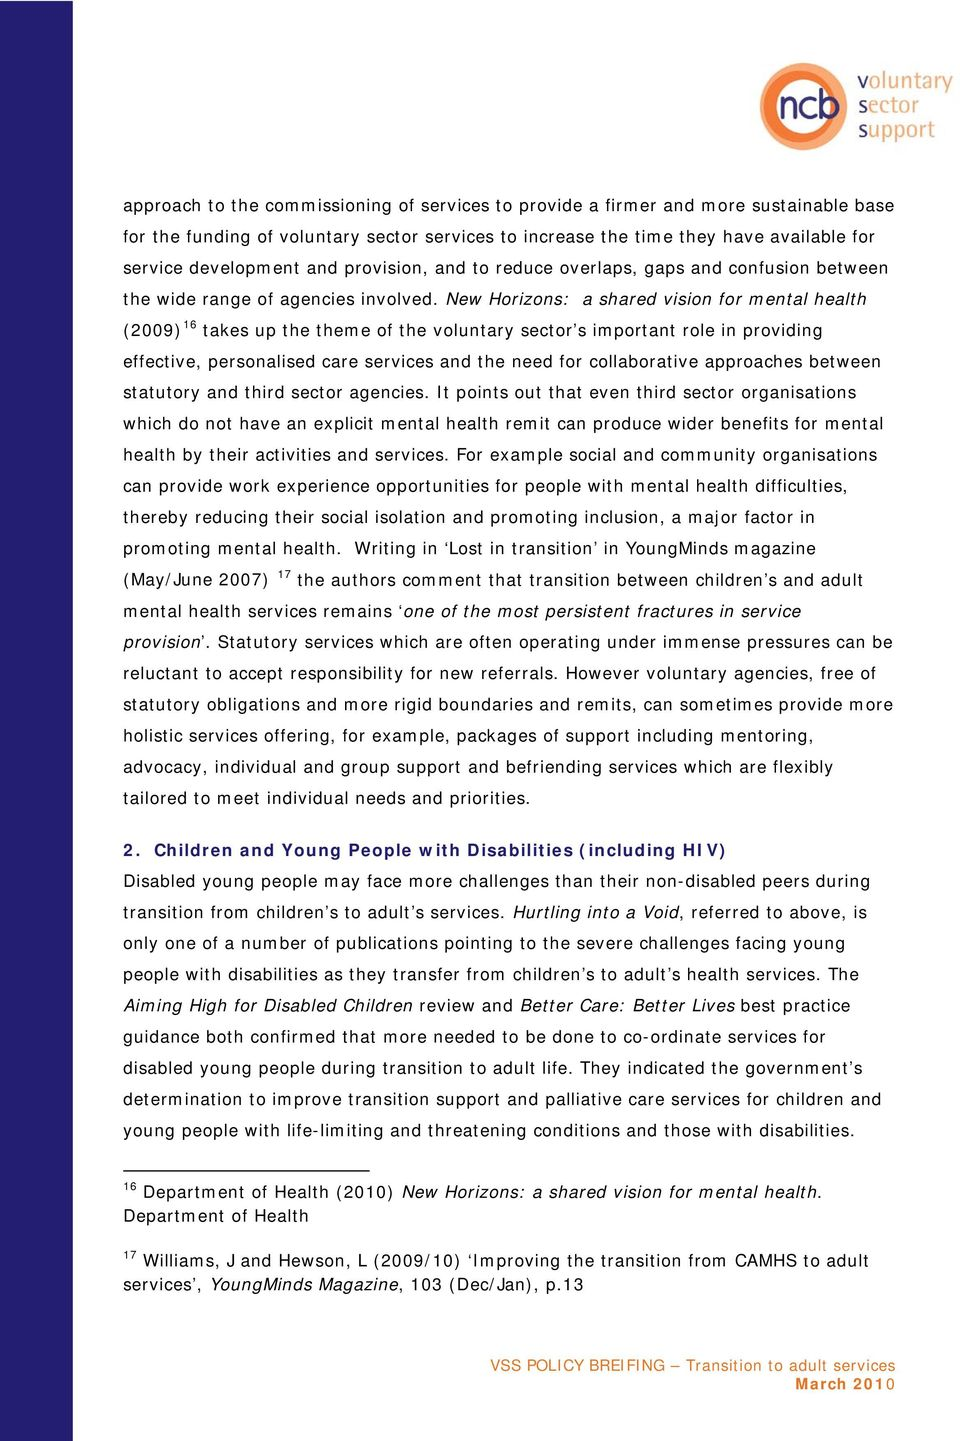 New Horizons: a shared vision for mental health (2009) 16 takes up the theme of the voluntary sector s important role in providing effective, personalised care services and the need for collaborative